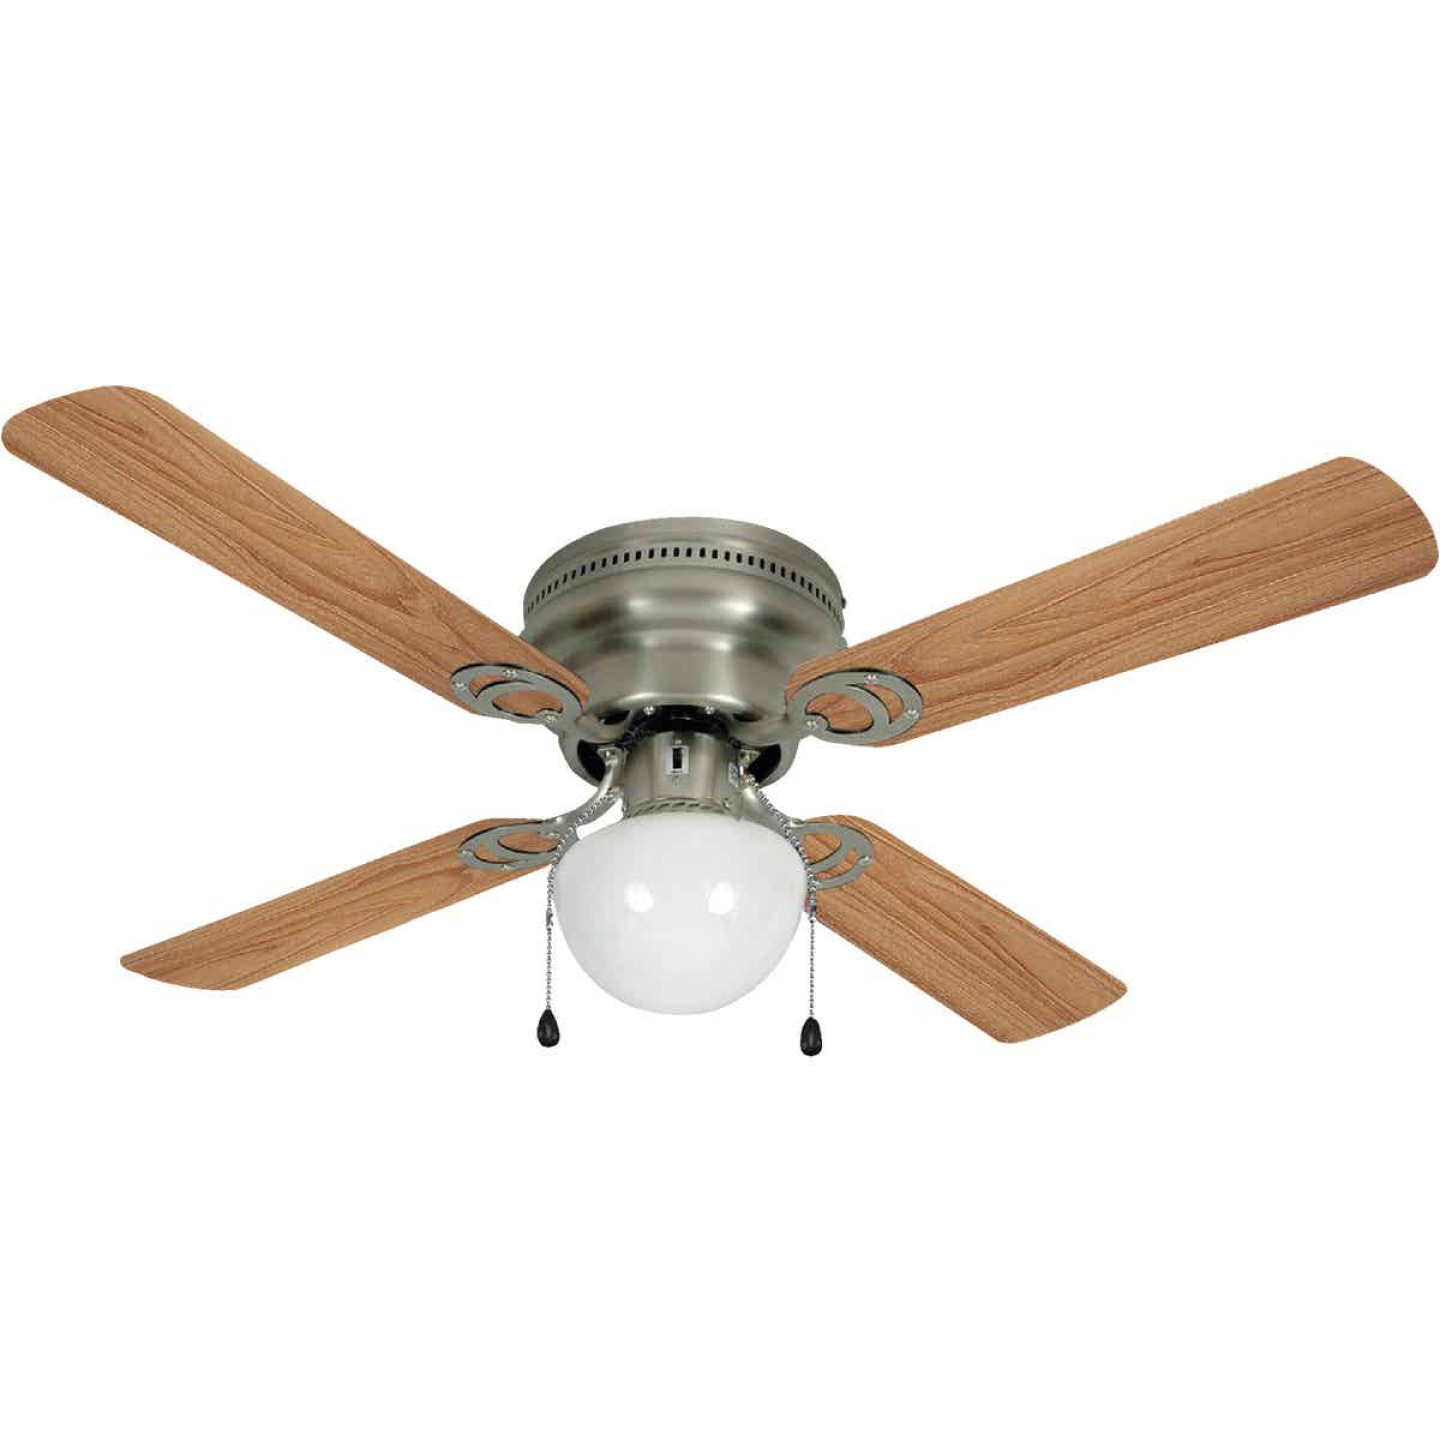 Home Impressions Neptune 42 In. Brushed Nickel Ceiling Fan with Light Kit Image 1